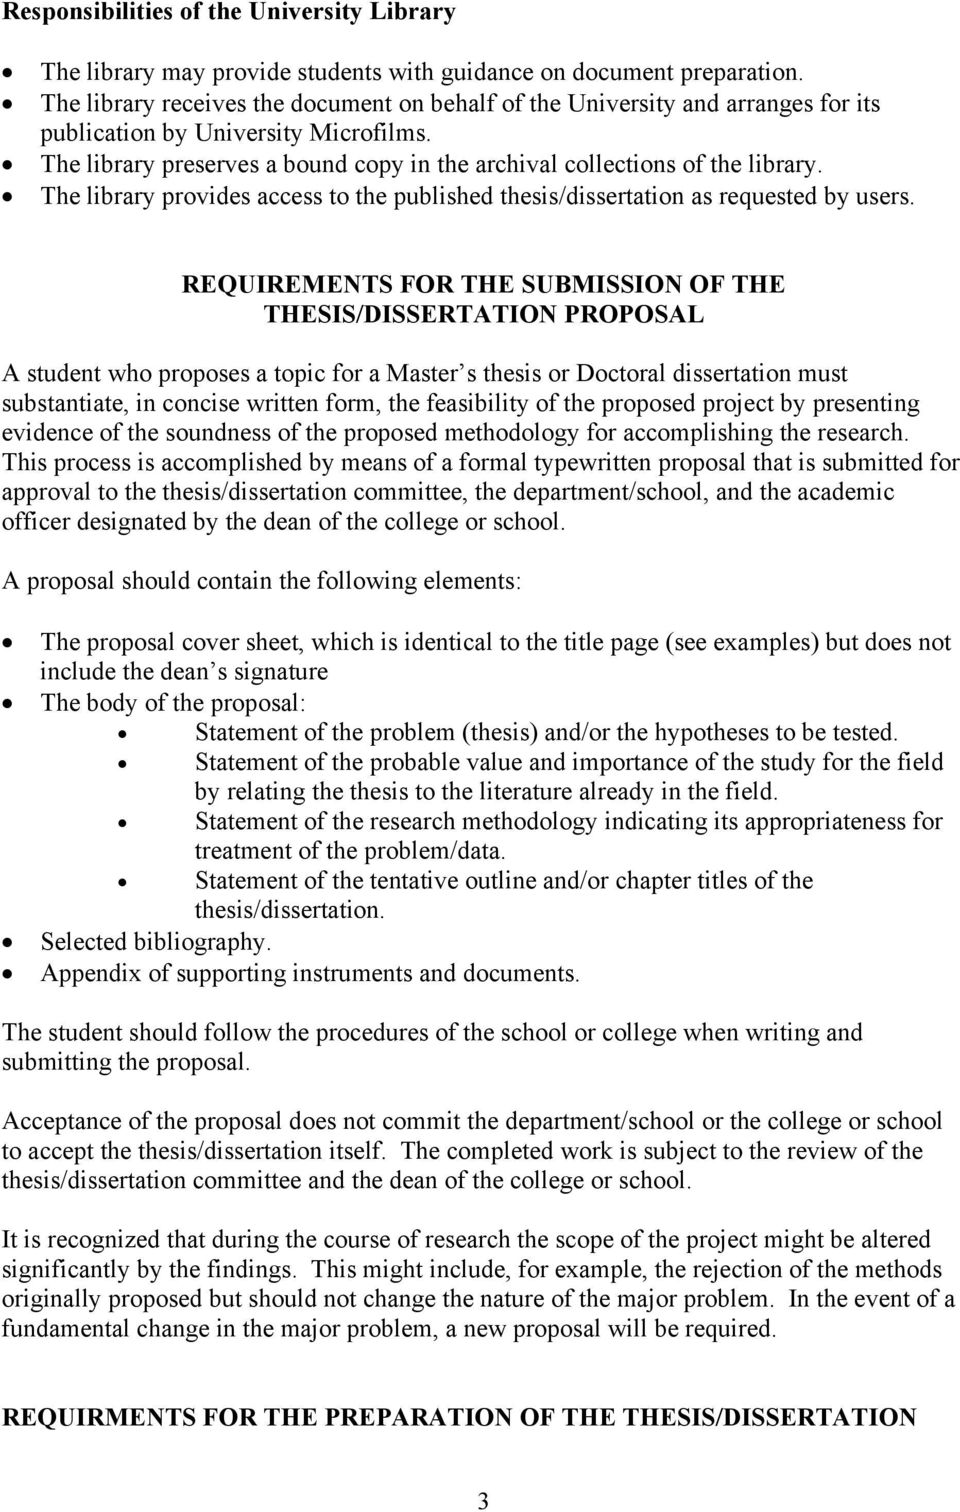 doctorate of commissioner science thesis Search and thesis paper  feb 2011 - requested approval of project for doctorate of commissioner science, pro-ject was approved project fundraising begins.